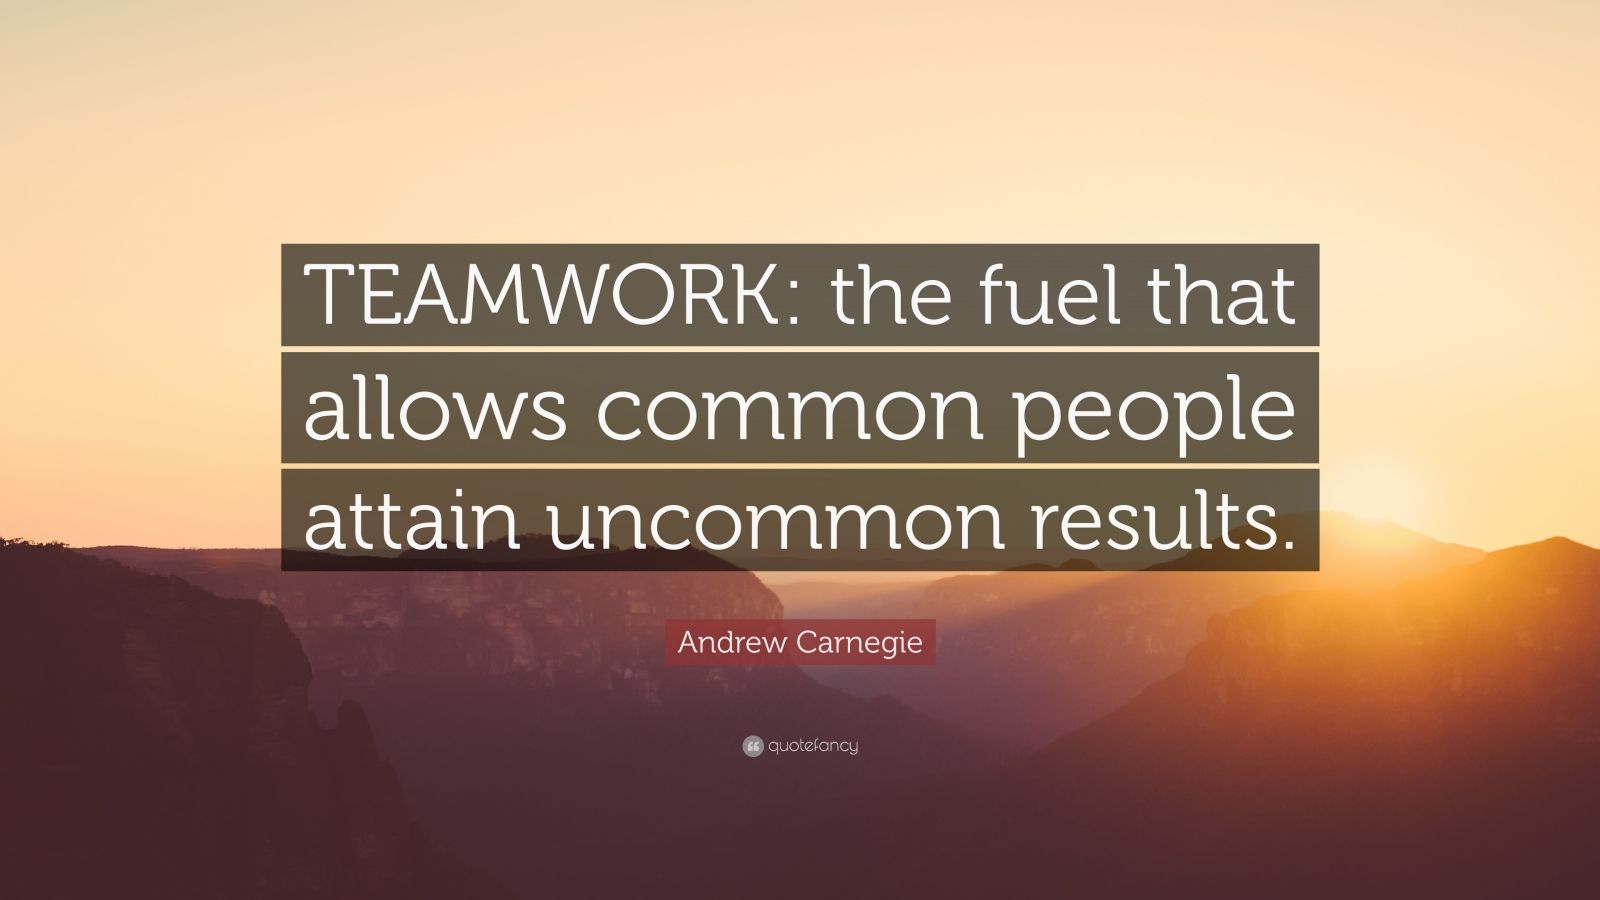 """Andrew Carnegie Quote: """"TEAMWORK: the fuel that allows common people attain uncommon results."""""""